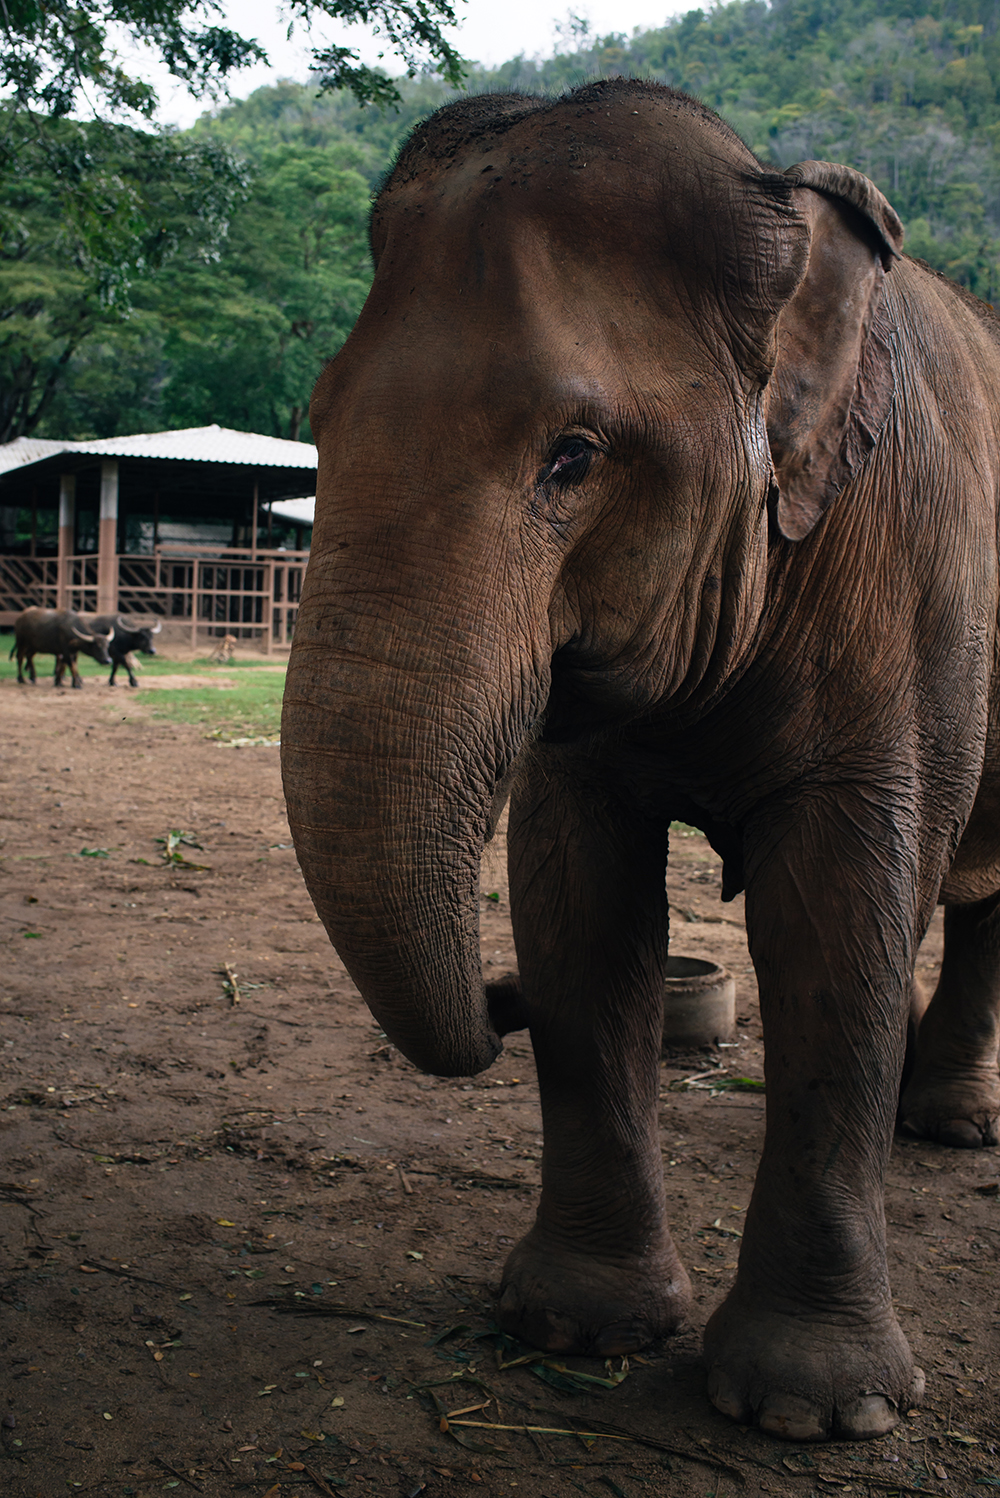 Elephant Nature Park rescue and sanctuary Chiang Mai Thailand.